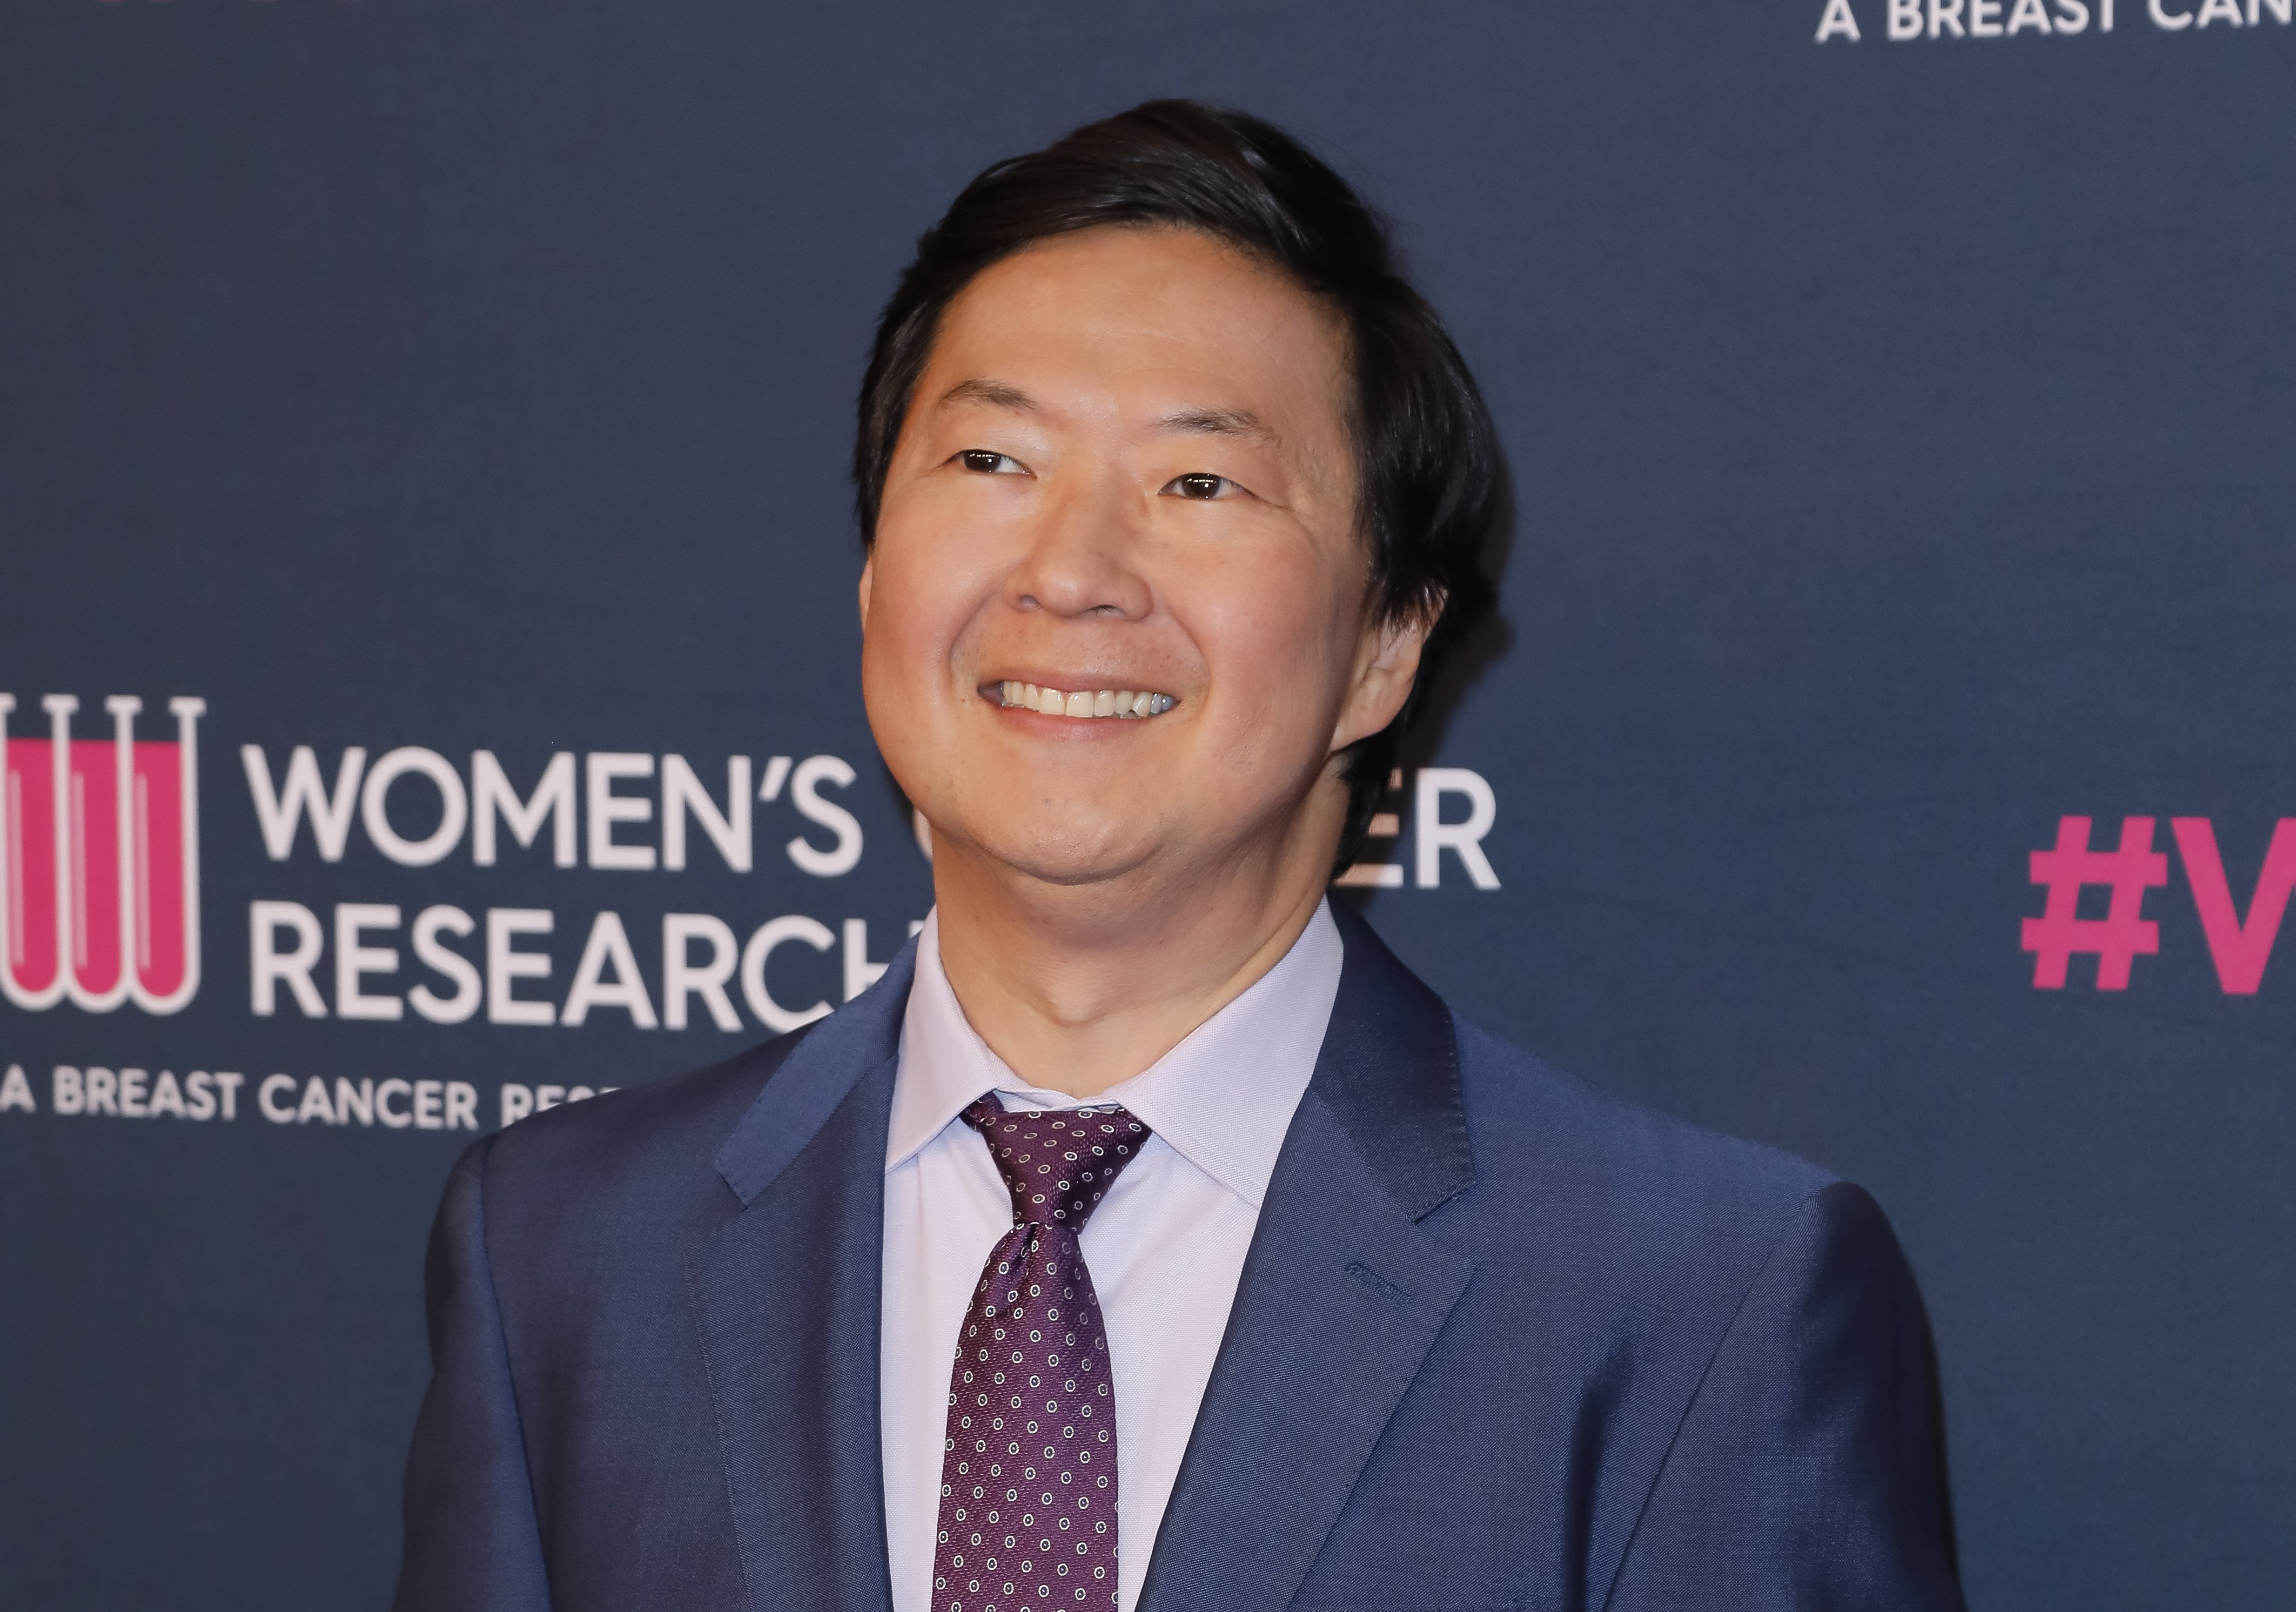 Ken Jeong attends the Unforgettable Evening 2020 in Beverly Hills, California on February 27, 2020 | Photo: Getty Images